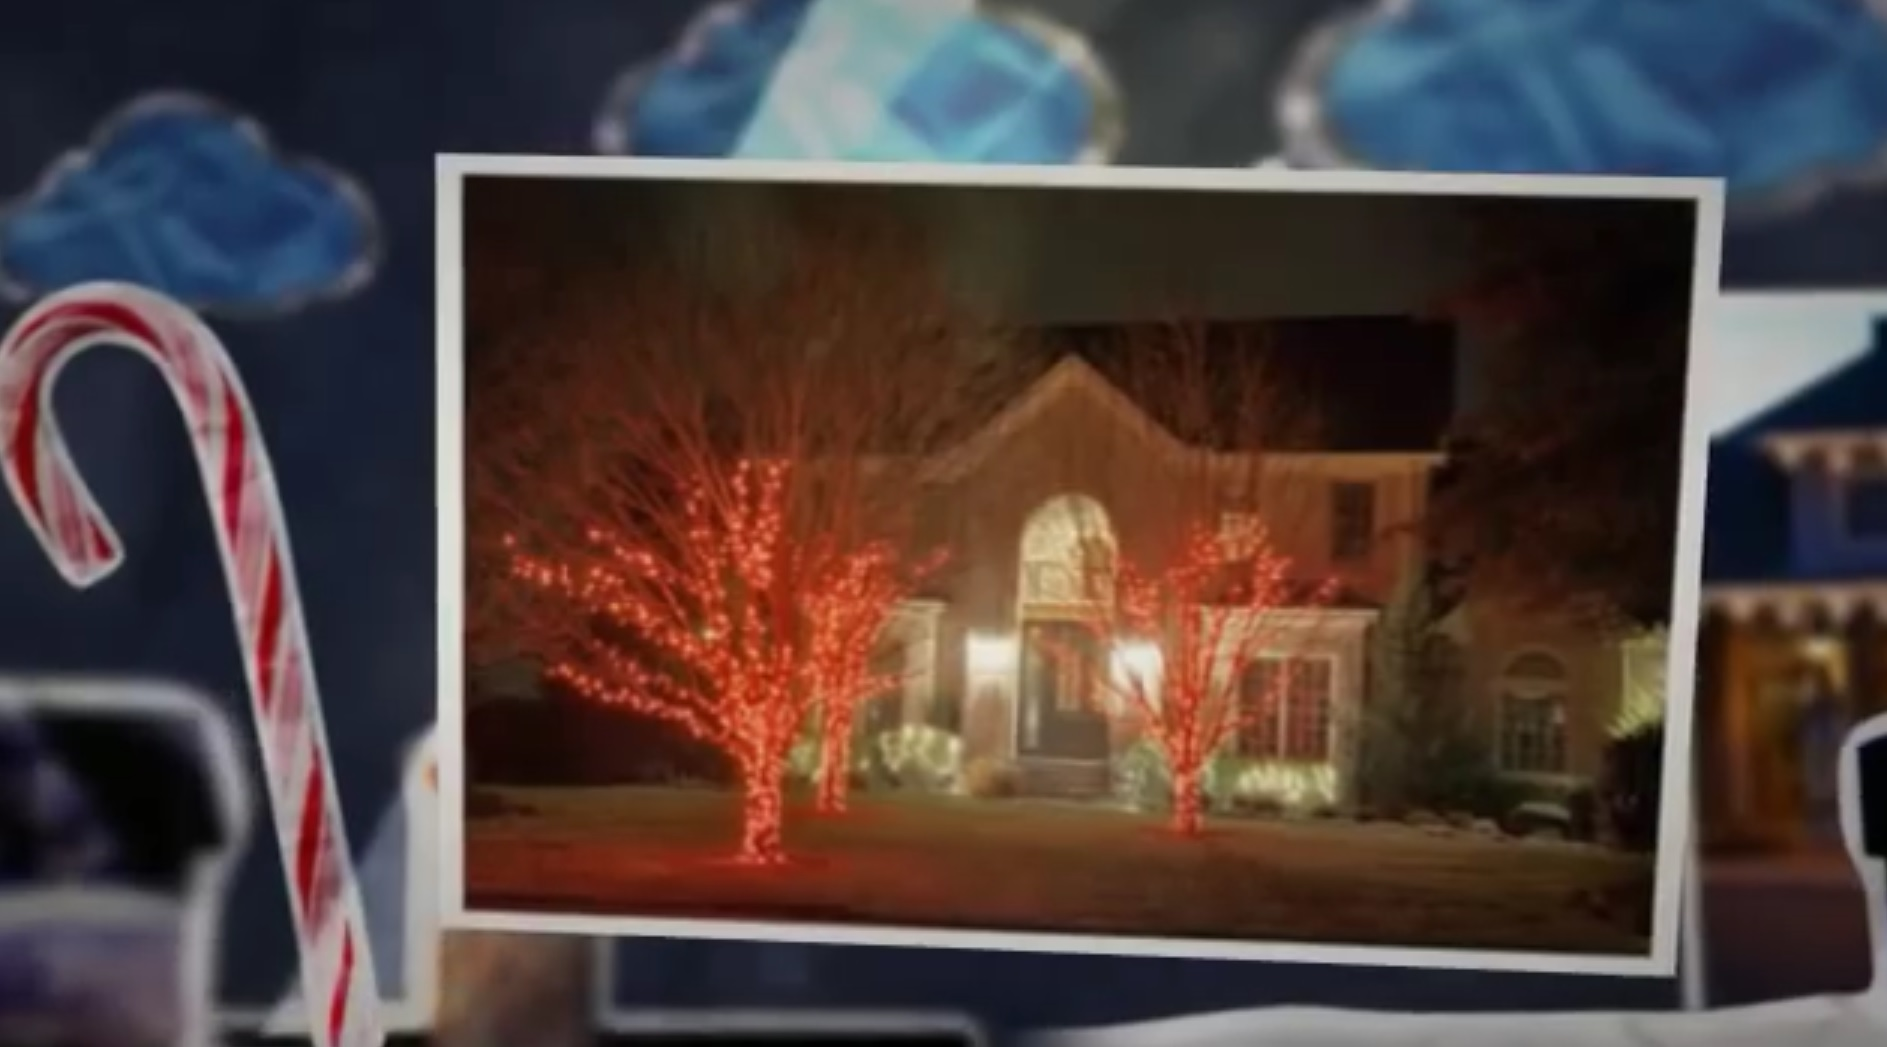 Holiday Outdoor Lighting in Greenville Creates a Festive Spirit Thumbnail